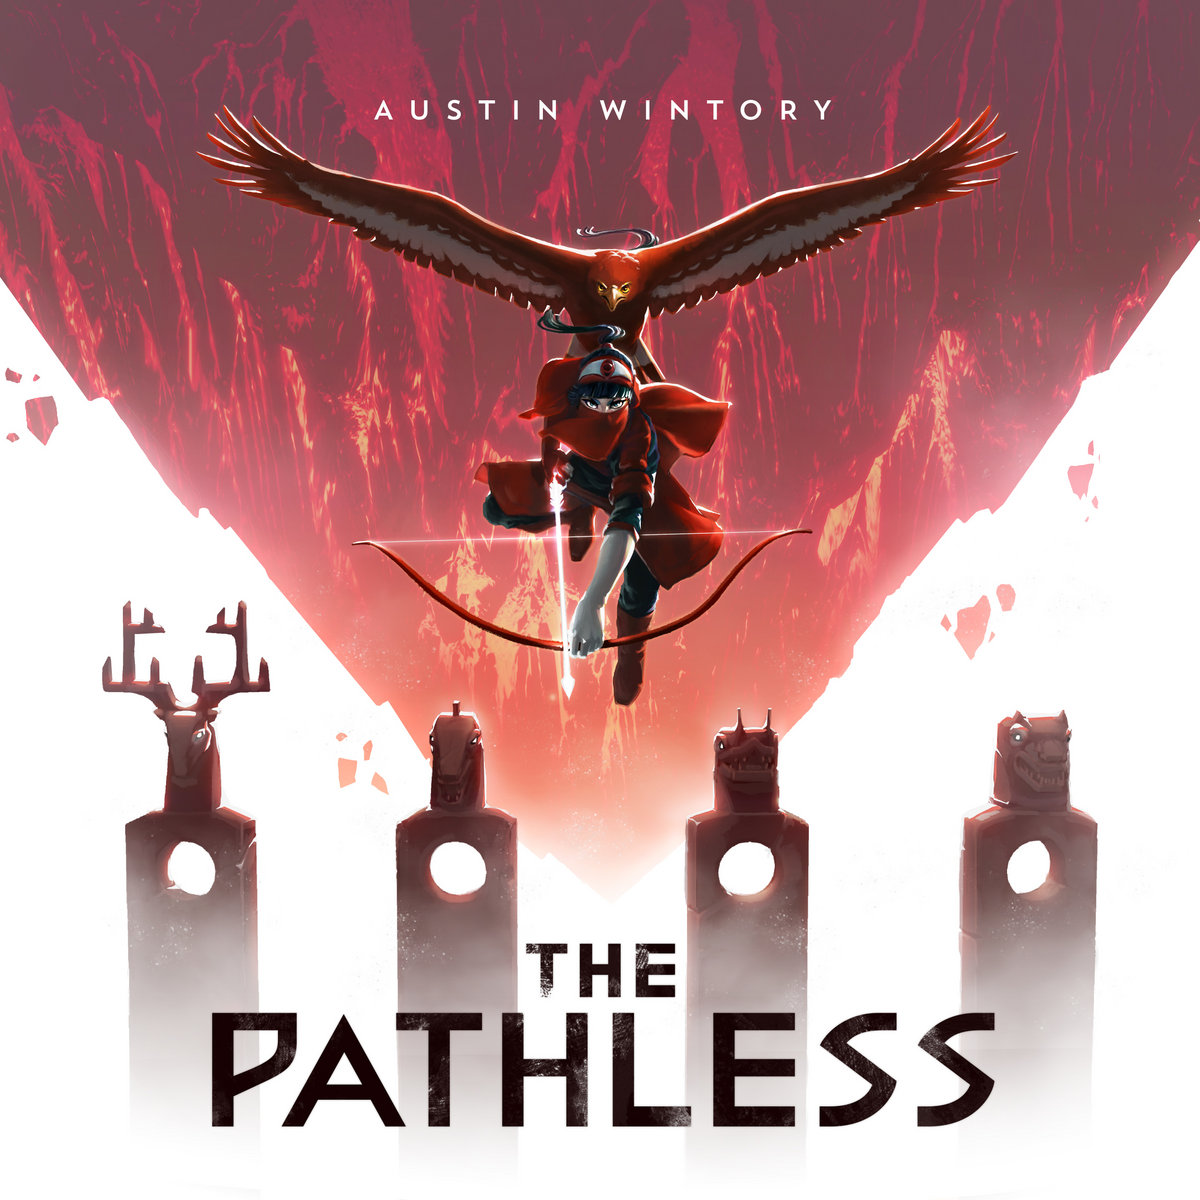 The Pathless - Austin Wintory